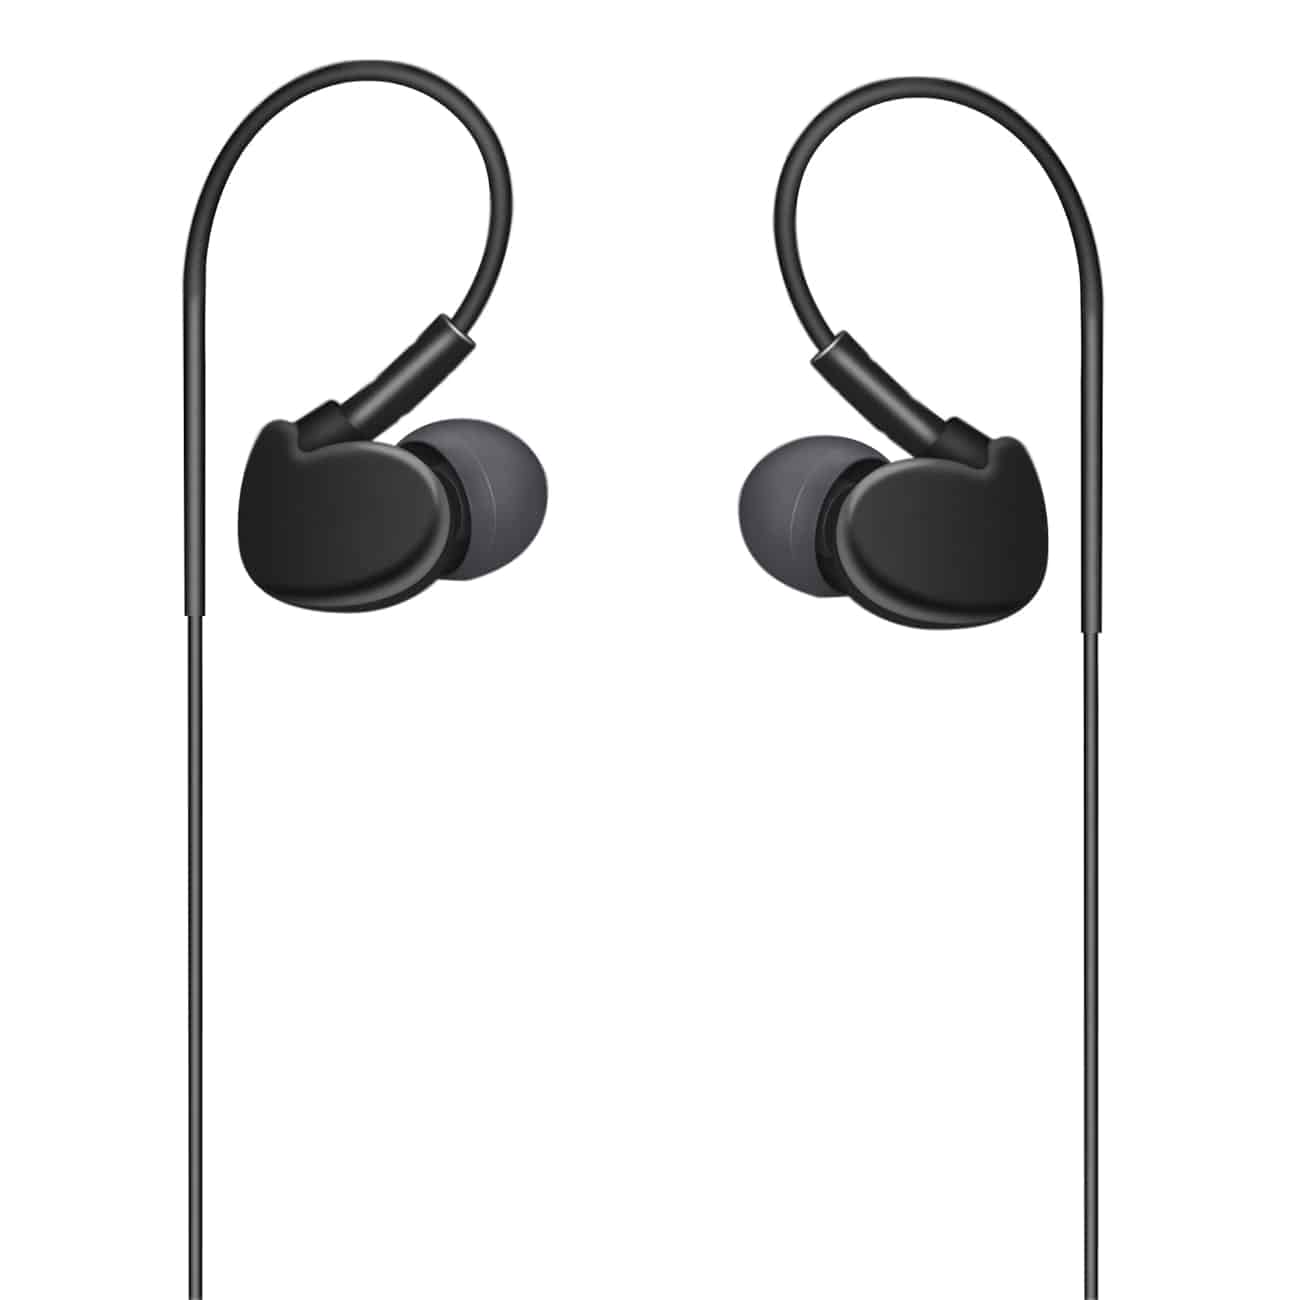 UNIVERSAL SPORT STEREO EARPHONES W. TANGLE FREE NOODLE CABLE AND MIC IN BLACK